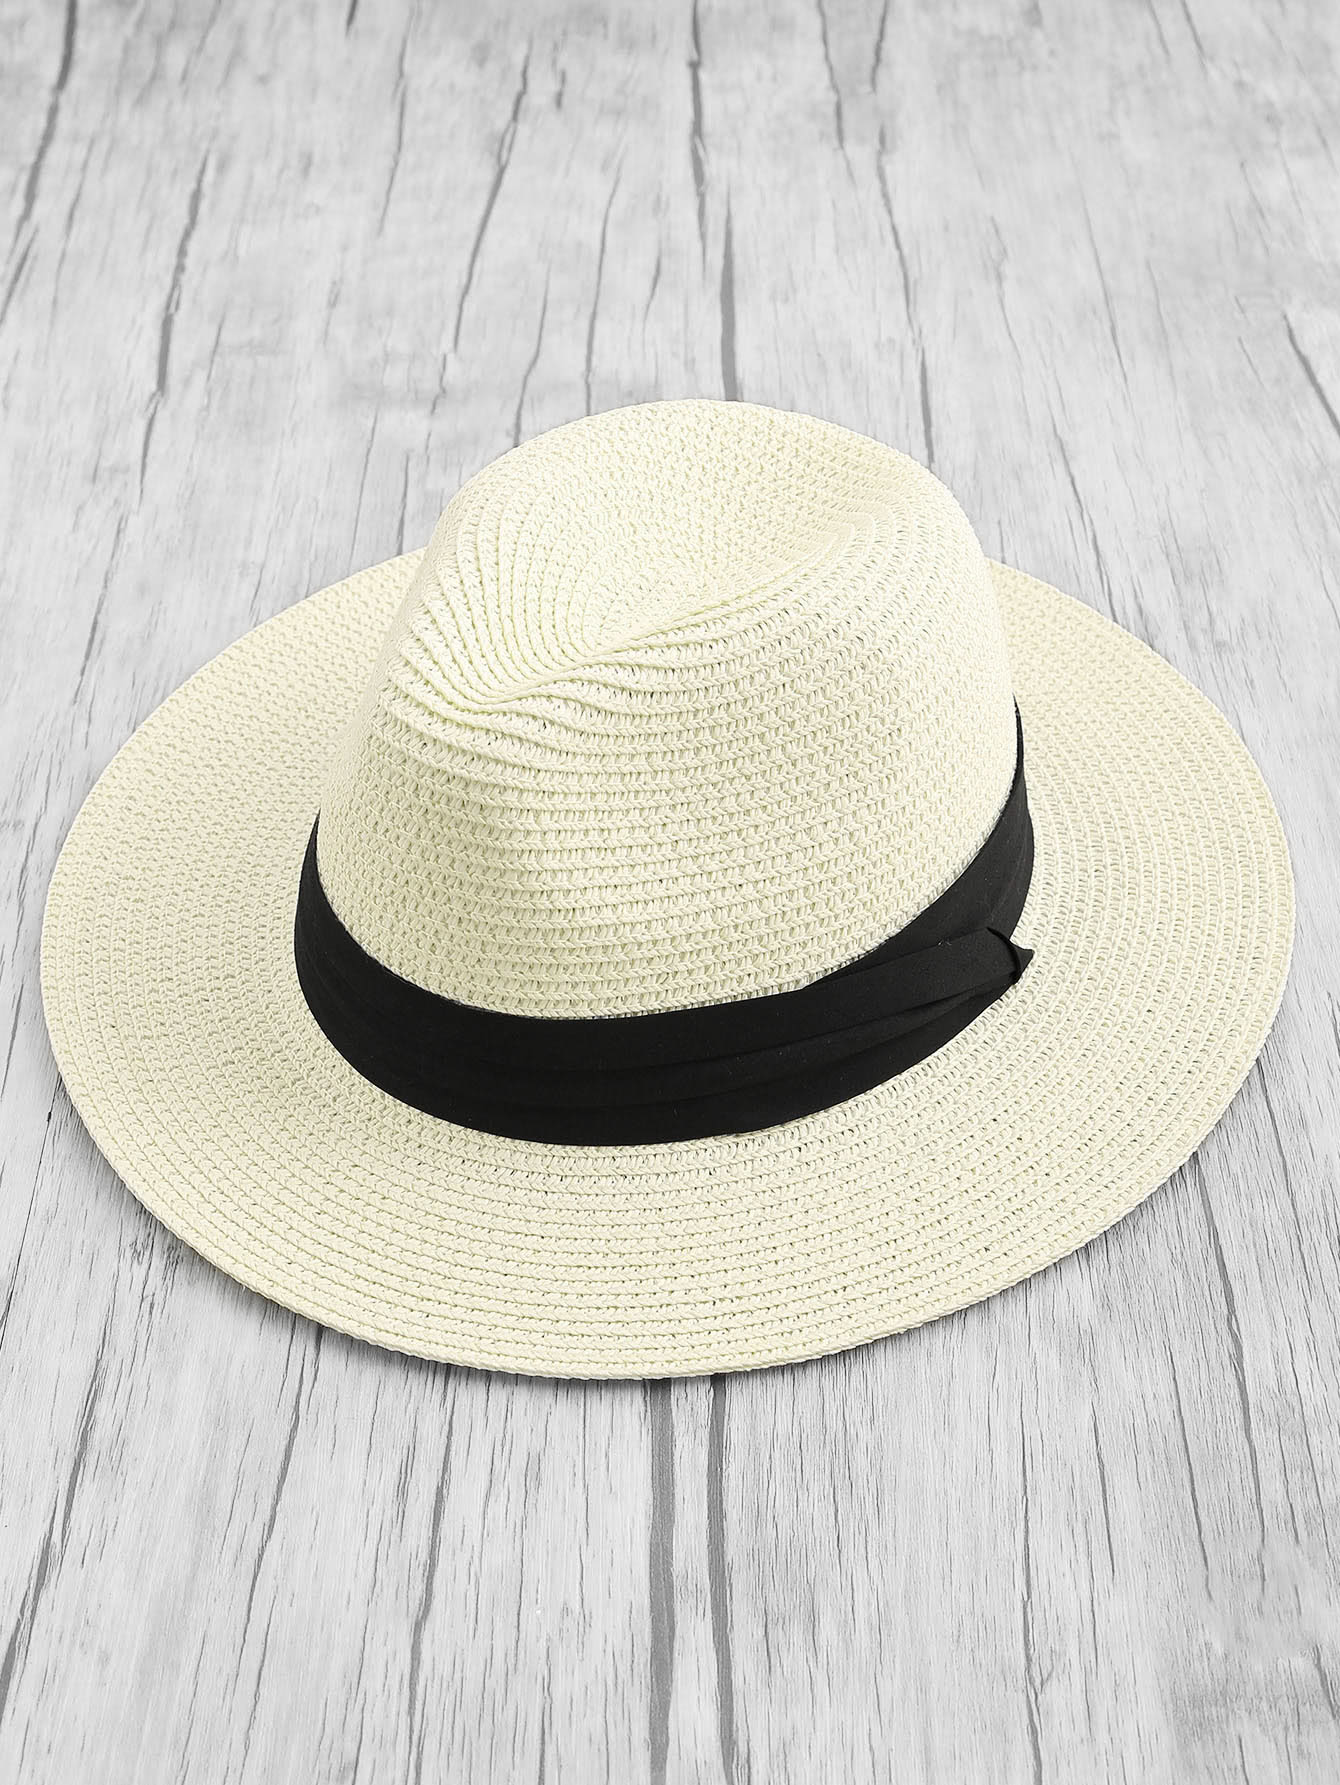 Contrast Band Straw Fedora Hat stetson men s breakers premium shantung straw hat